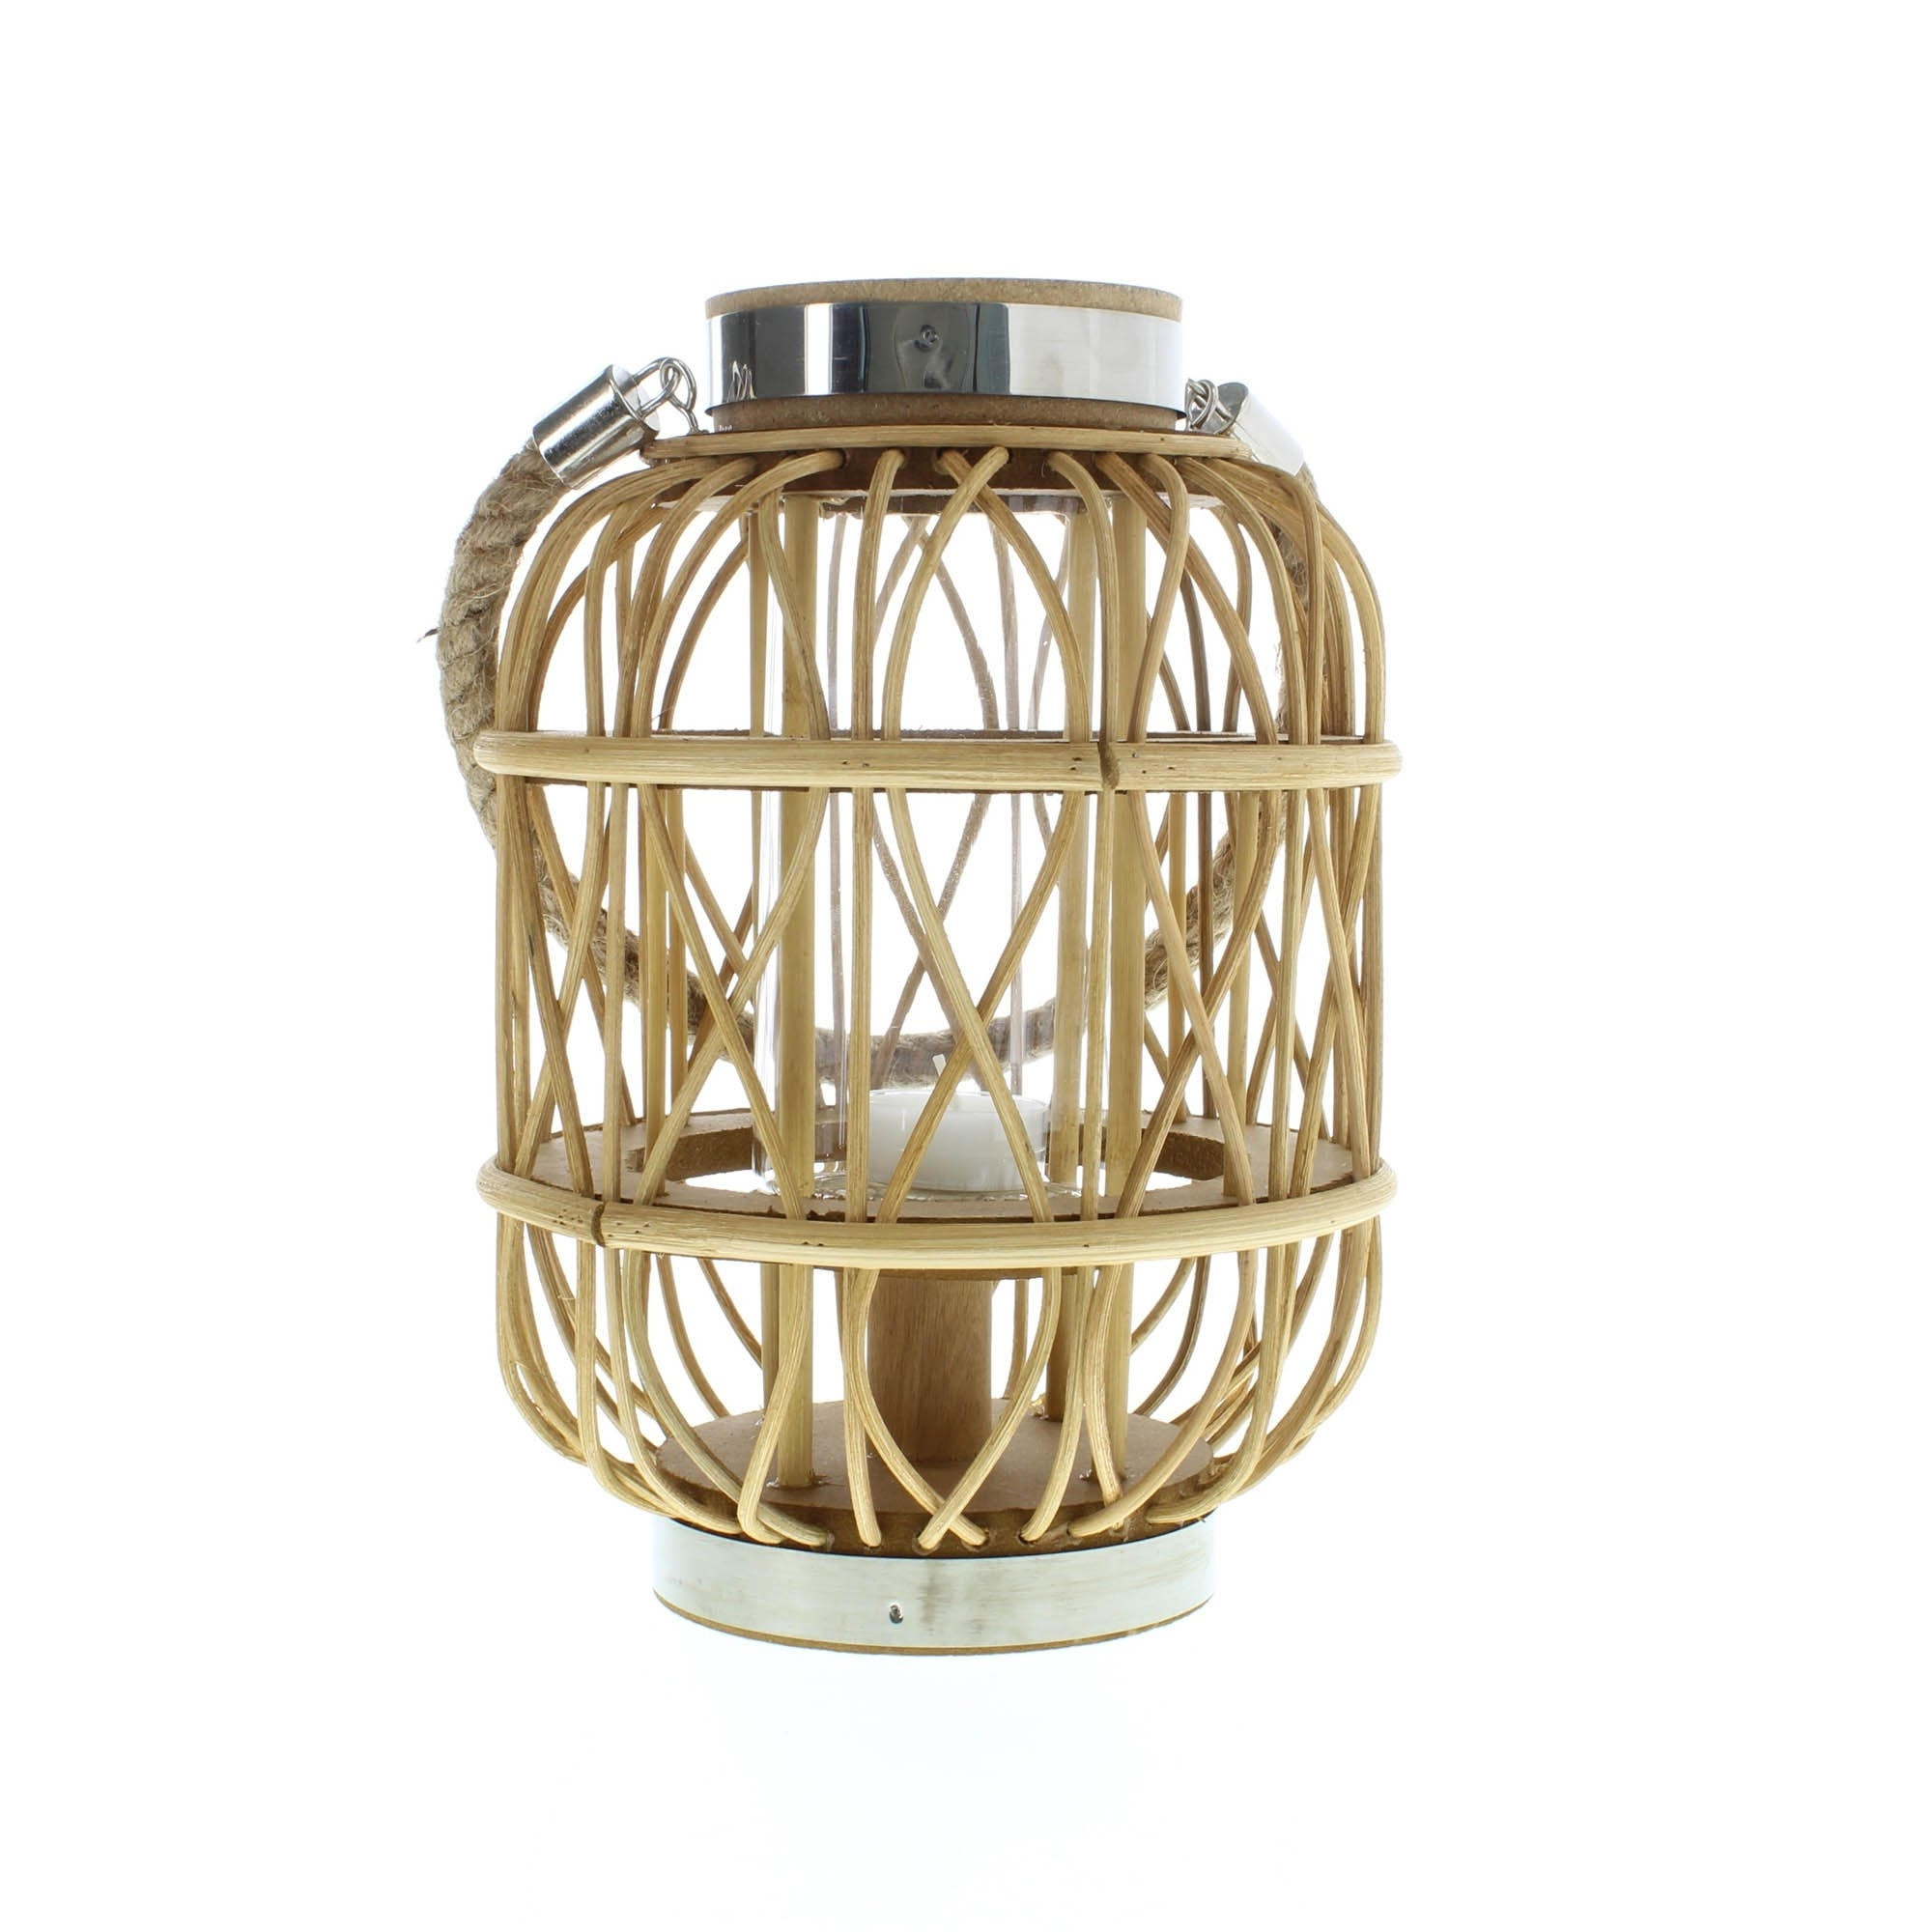 Most Current Outdoor Hanging Lanterns For Candles Regarding Wood Candle Lantern, Small Wove Rustic Decorative Lanterns For (View 8 of 20)